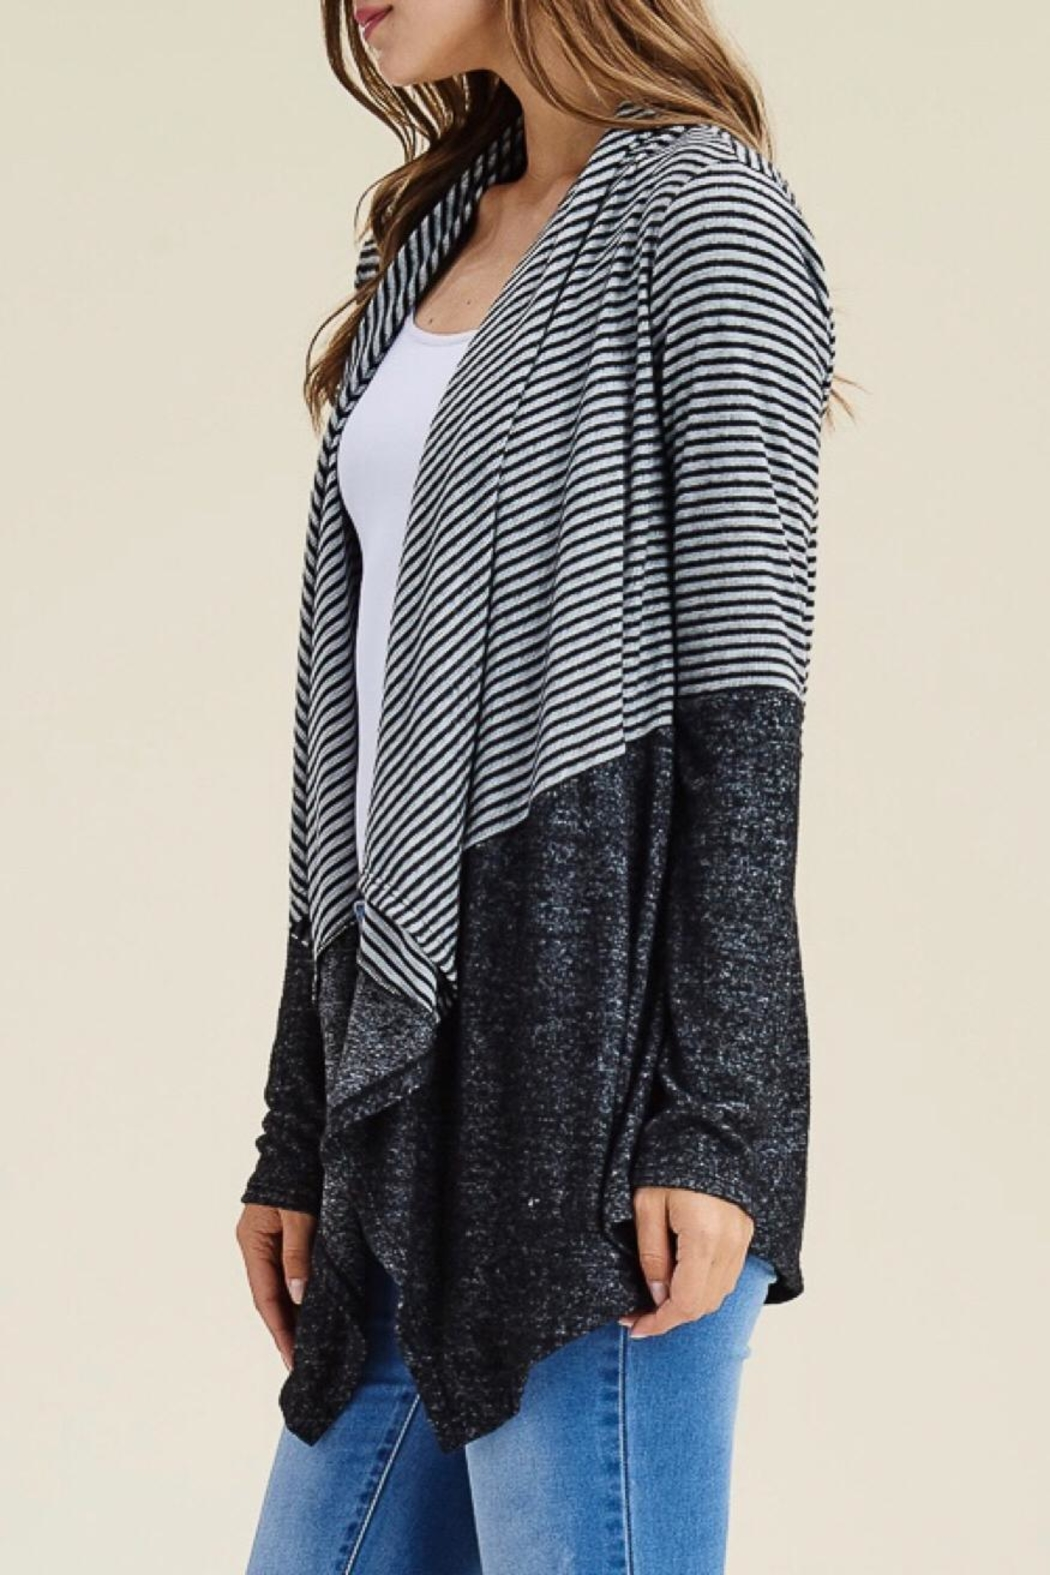 b3c454c6162 LuLu s Boutique Striped Open Cardigan from Washington — Shoptiques